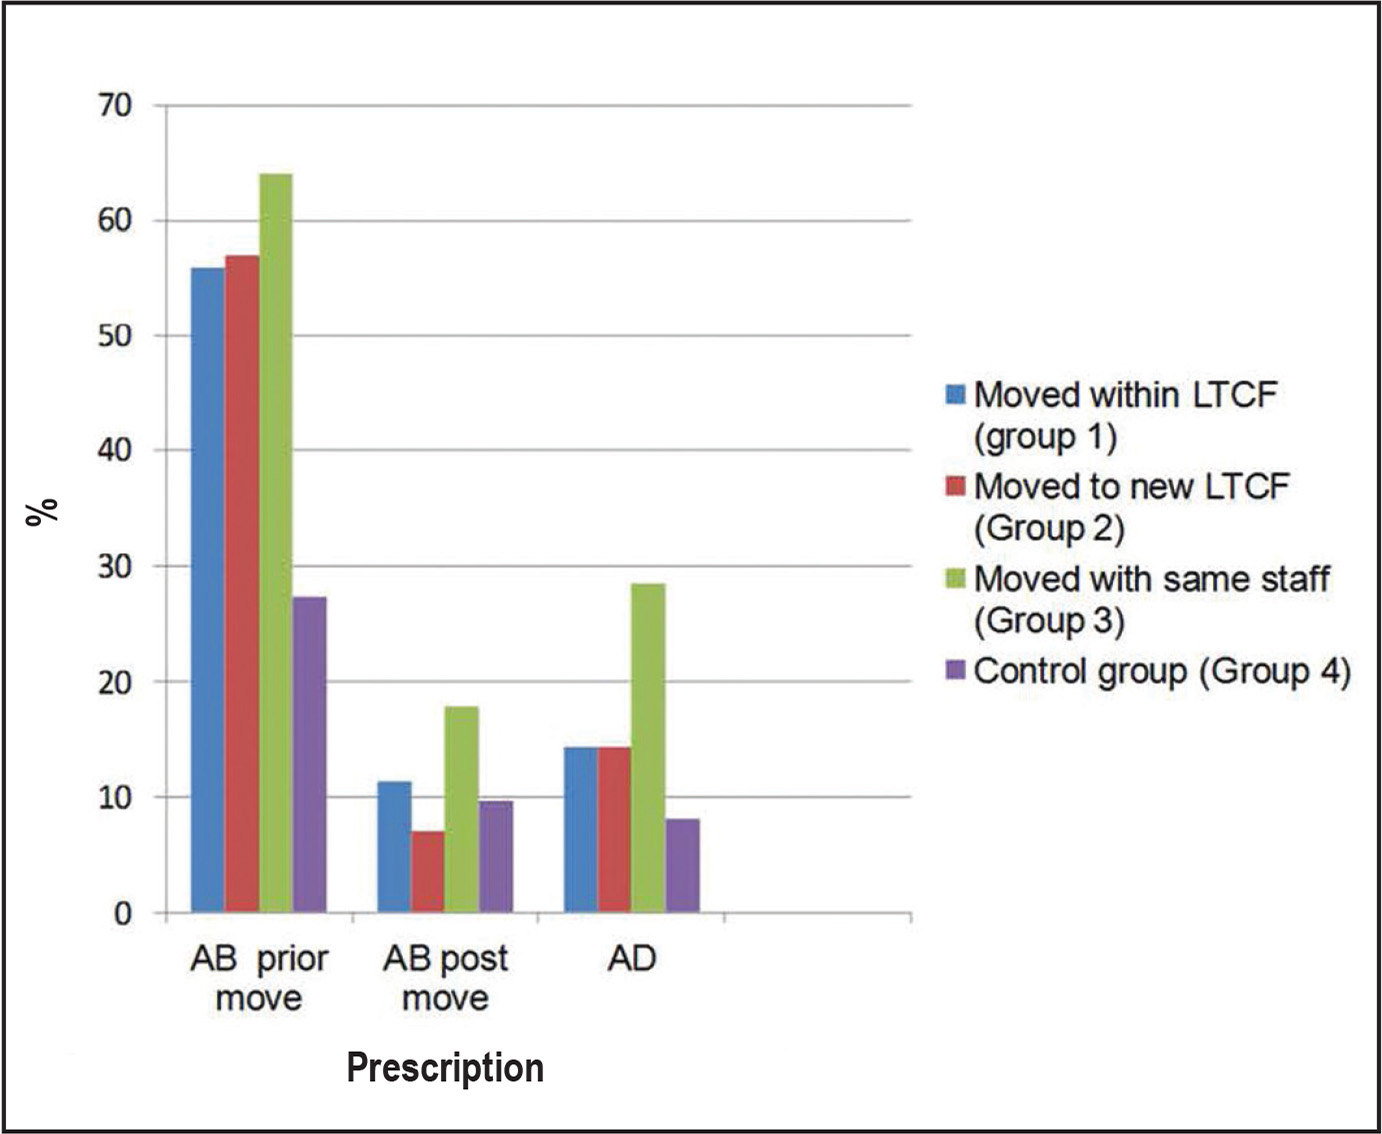 Percentages of antibiotic (AB) and antidepressant (AD) medication prescriptions. Note. LTCF = long-term care facility.